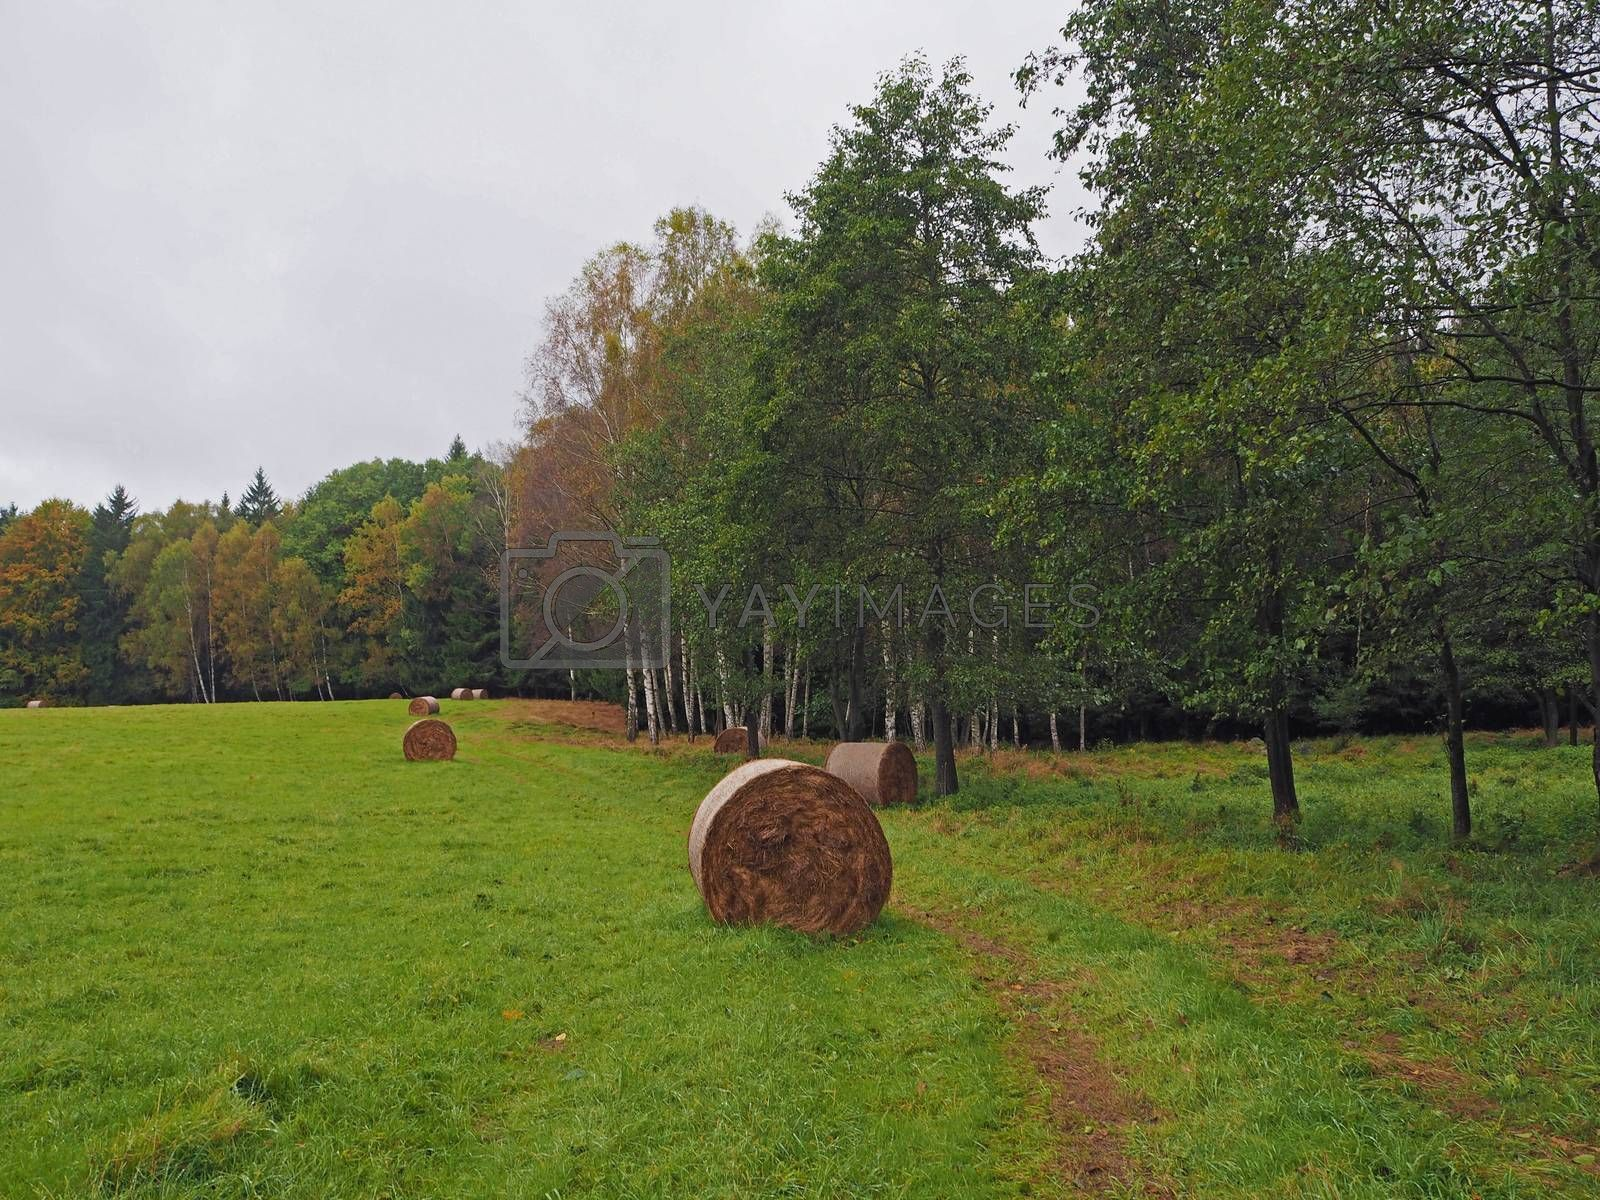 straw bales on the autumn green meadow and colorful trees